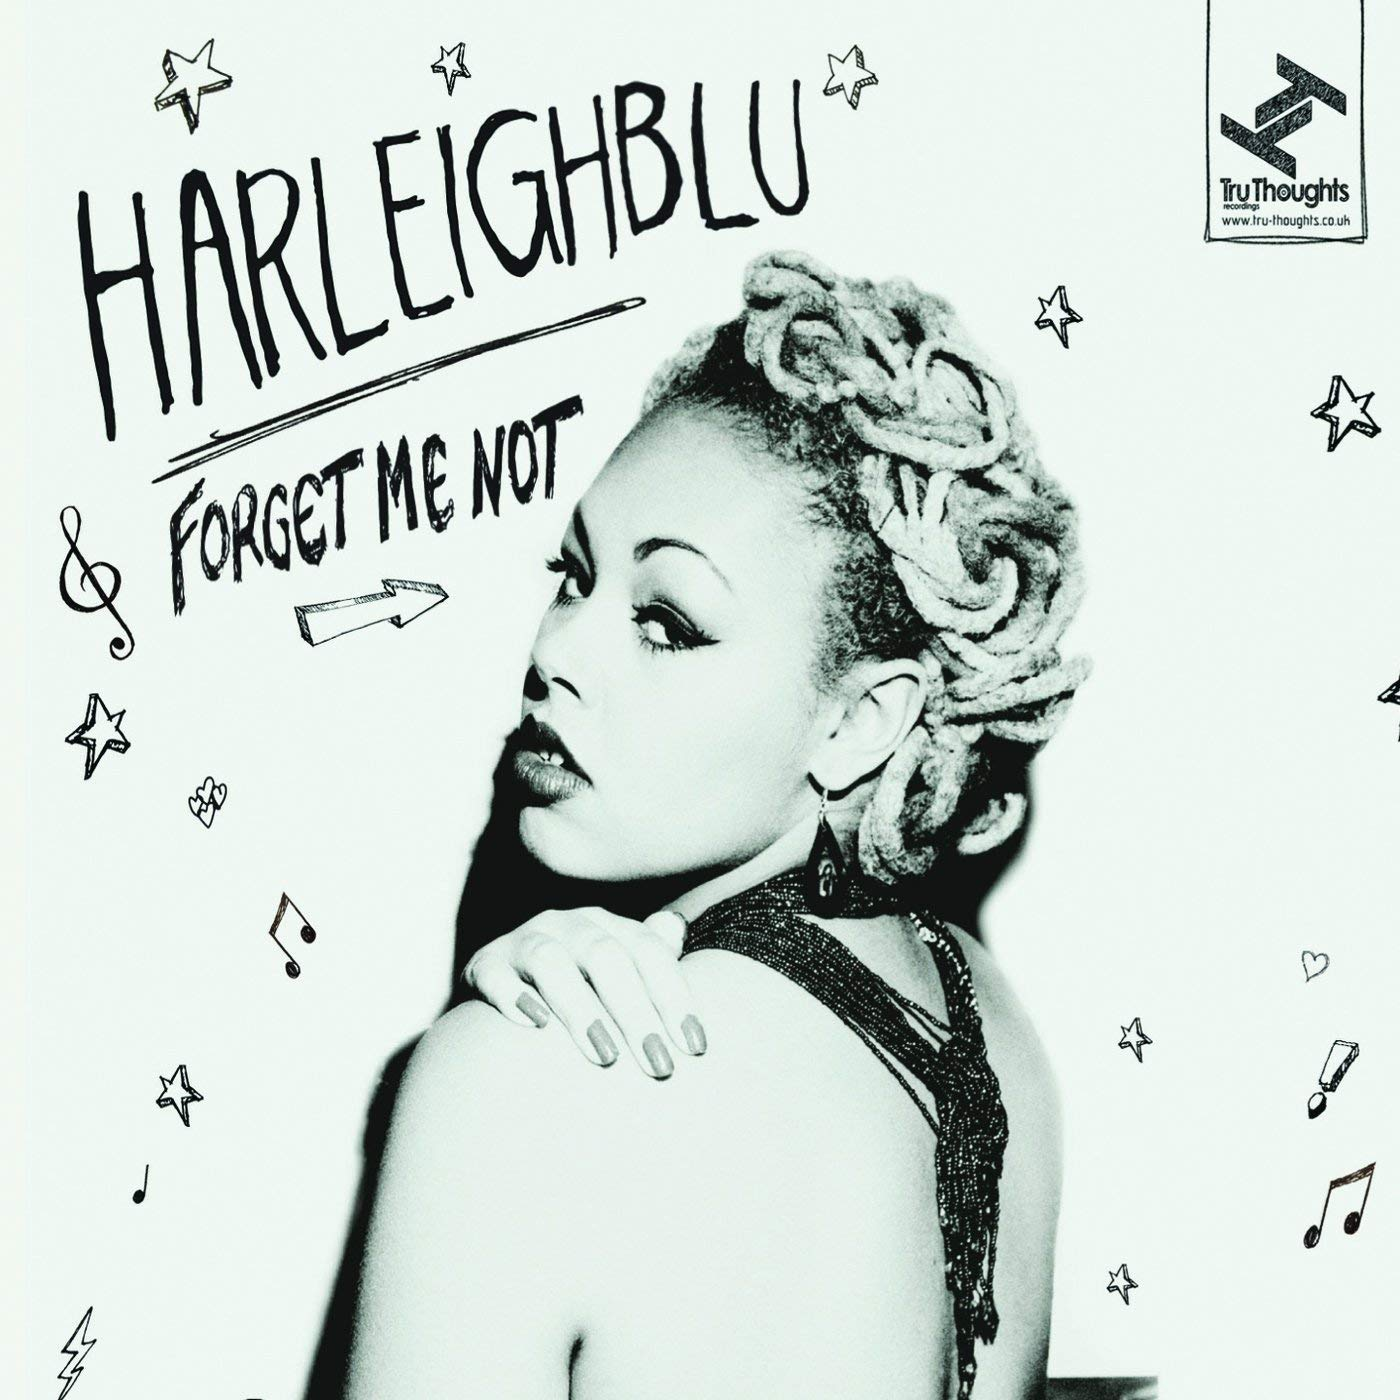 Image of Forget Me Not / Harleighblu